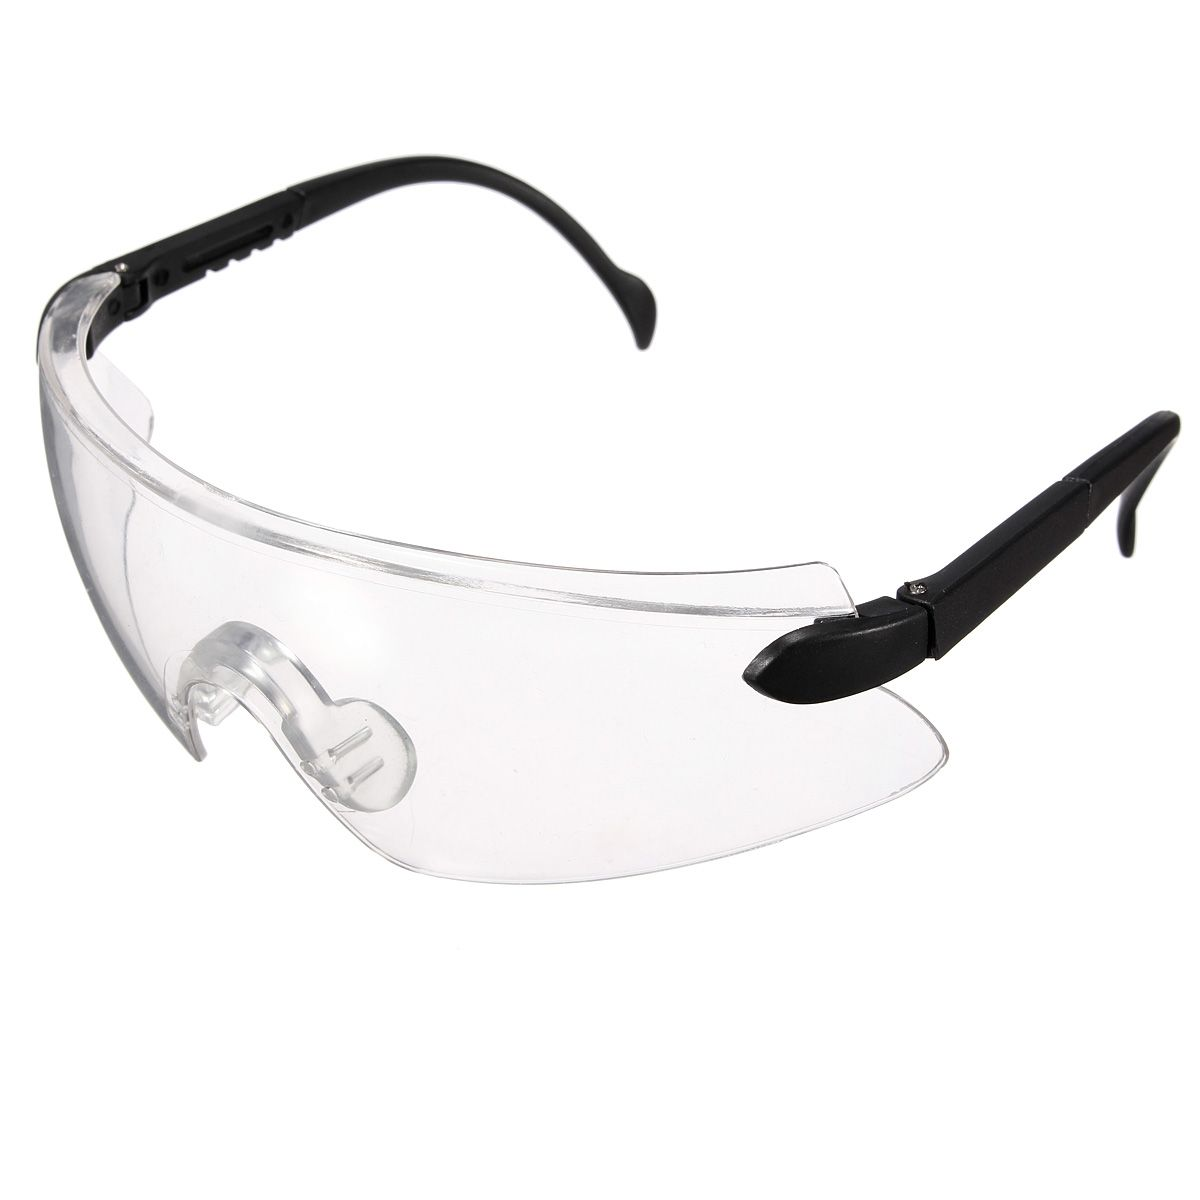 Clear safety goggle gafas eyes protection lab dental